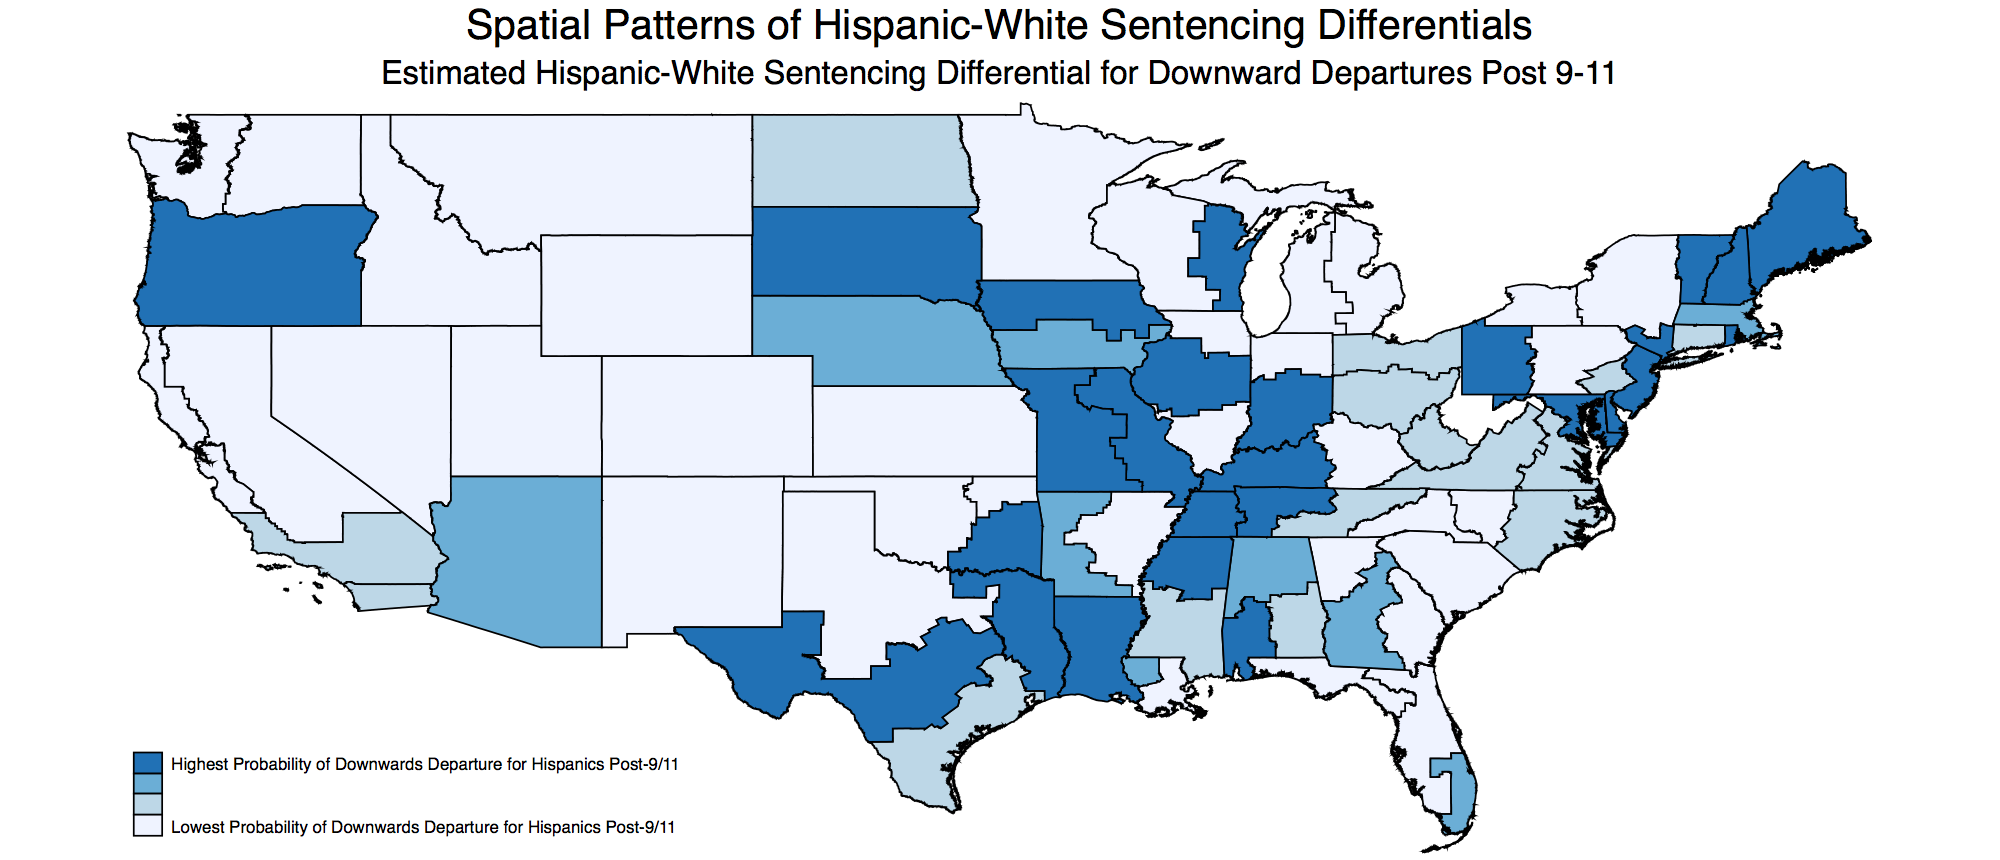 Spatial Patterns of Hispanic-White Sentencing Differentials